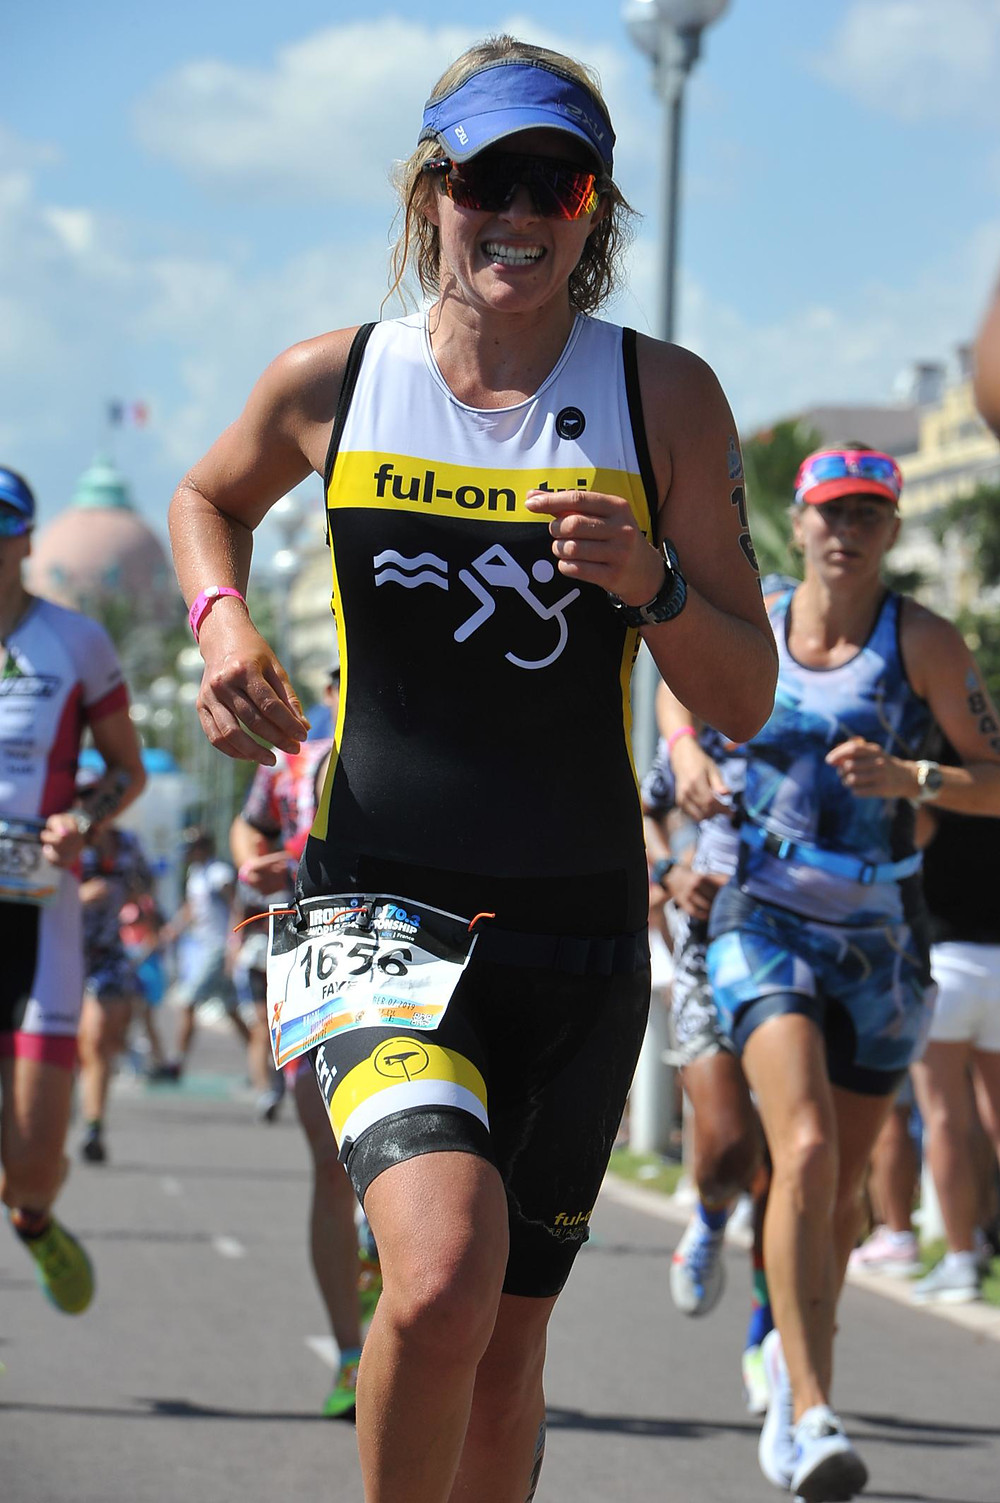 Another fantastic race face! In the last kilometre of the half marathon in the Ironman 70.3 World Championships